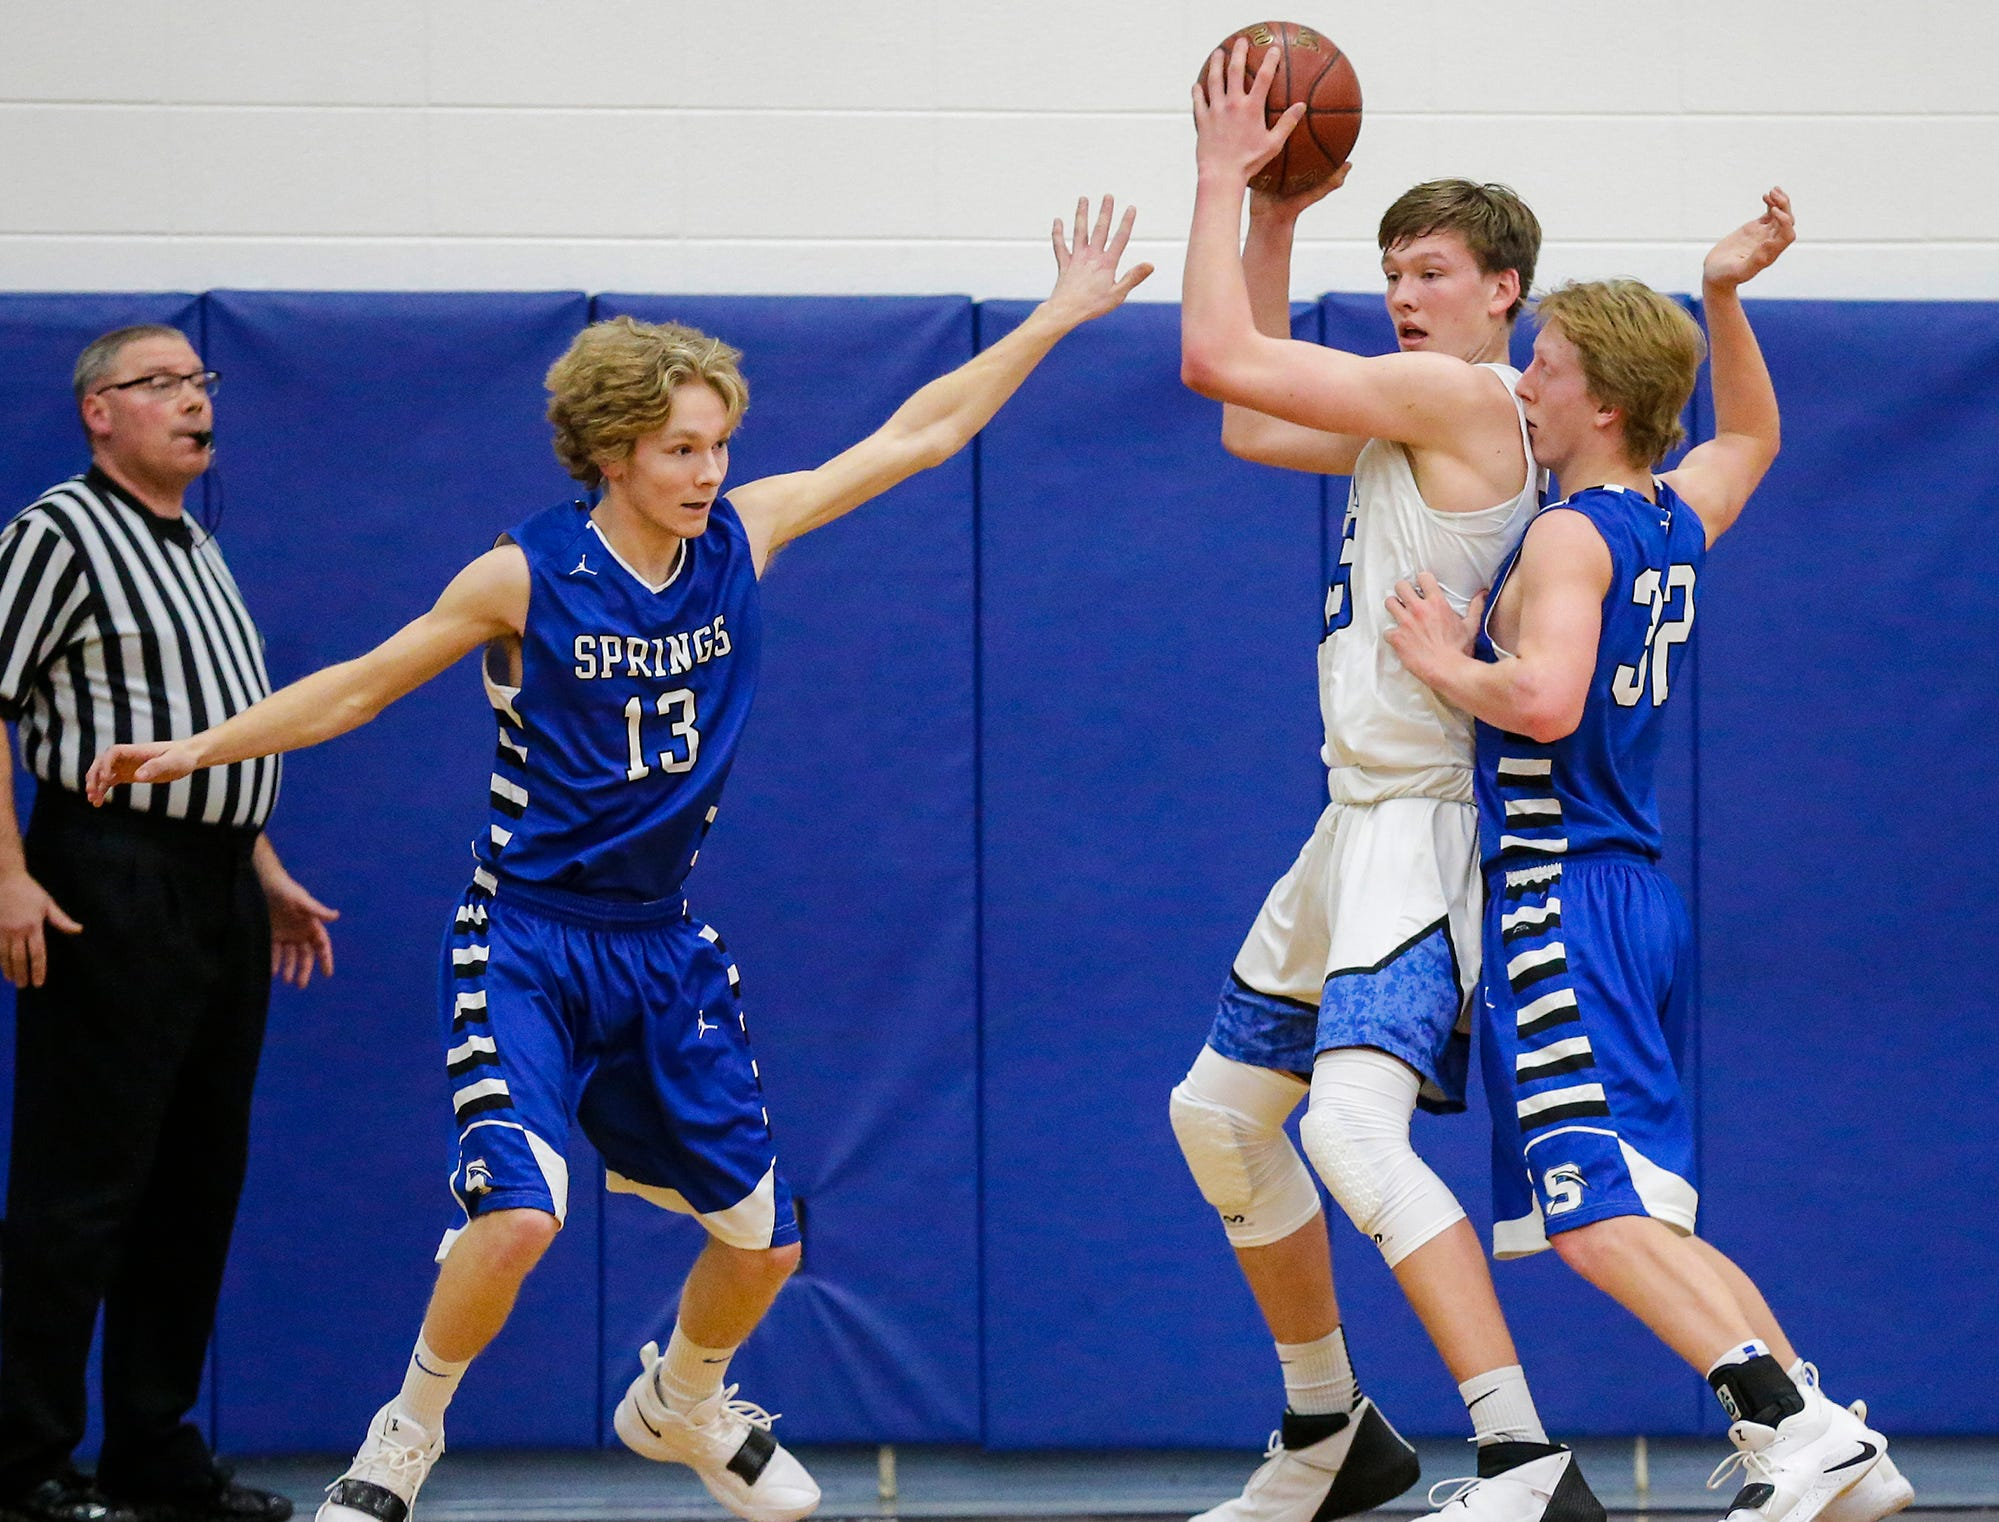 St. Mary's Spring Academy boys basketball's Myles Ottery (13) and Ezra Tucker (32) defend against Winnebago Lutheran Academy's Gabe Pruss Tuesday, Jan. 8, 2019, during their game in Fond du Lac. Winnebago Lutheran Academy won the game 69-66.